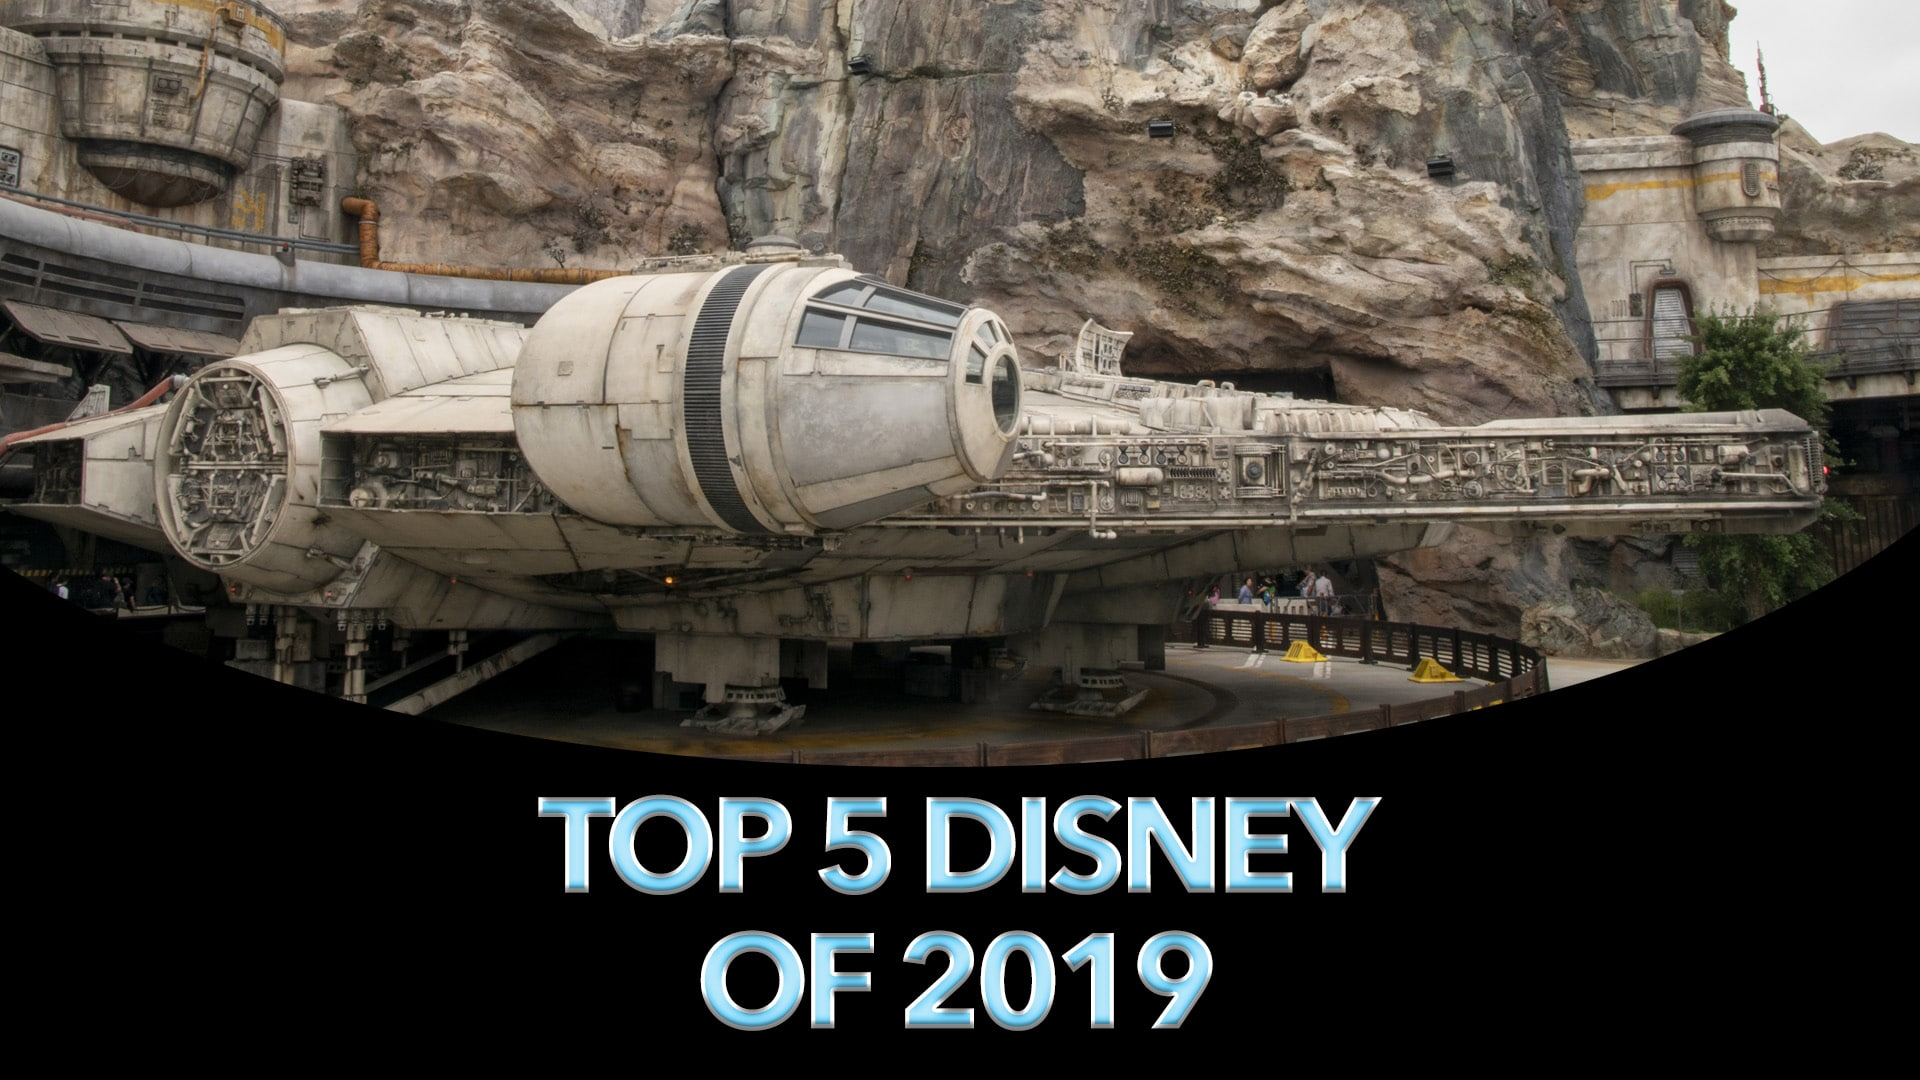 Top 5 Disney Stories of 2019 – #2: Star Wars Galaxy's Edge (and Review of Rise of the Resistance)